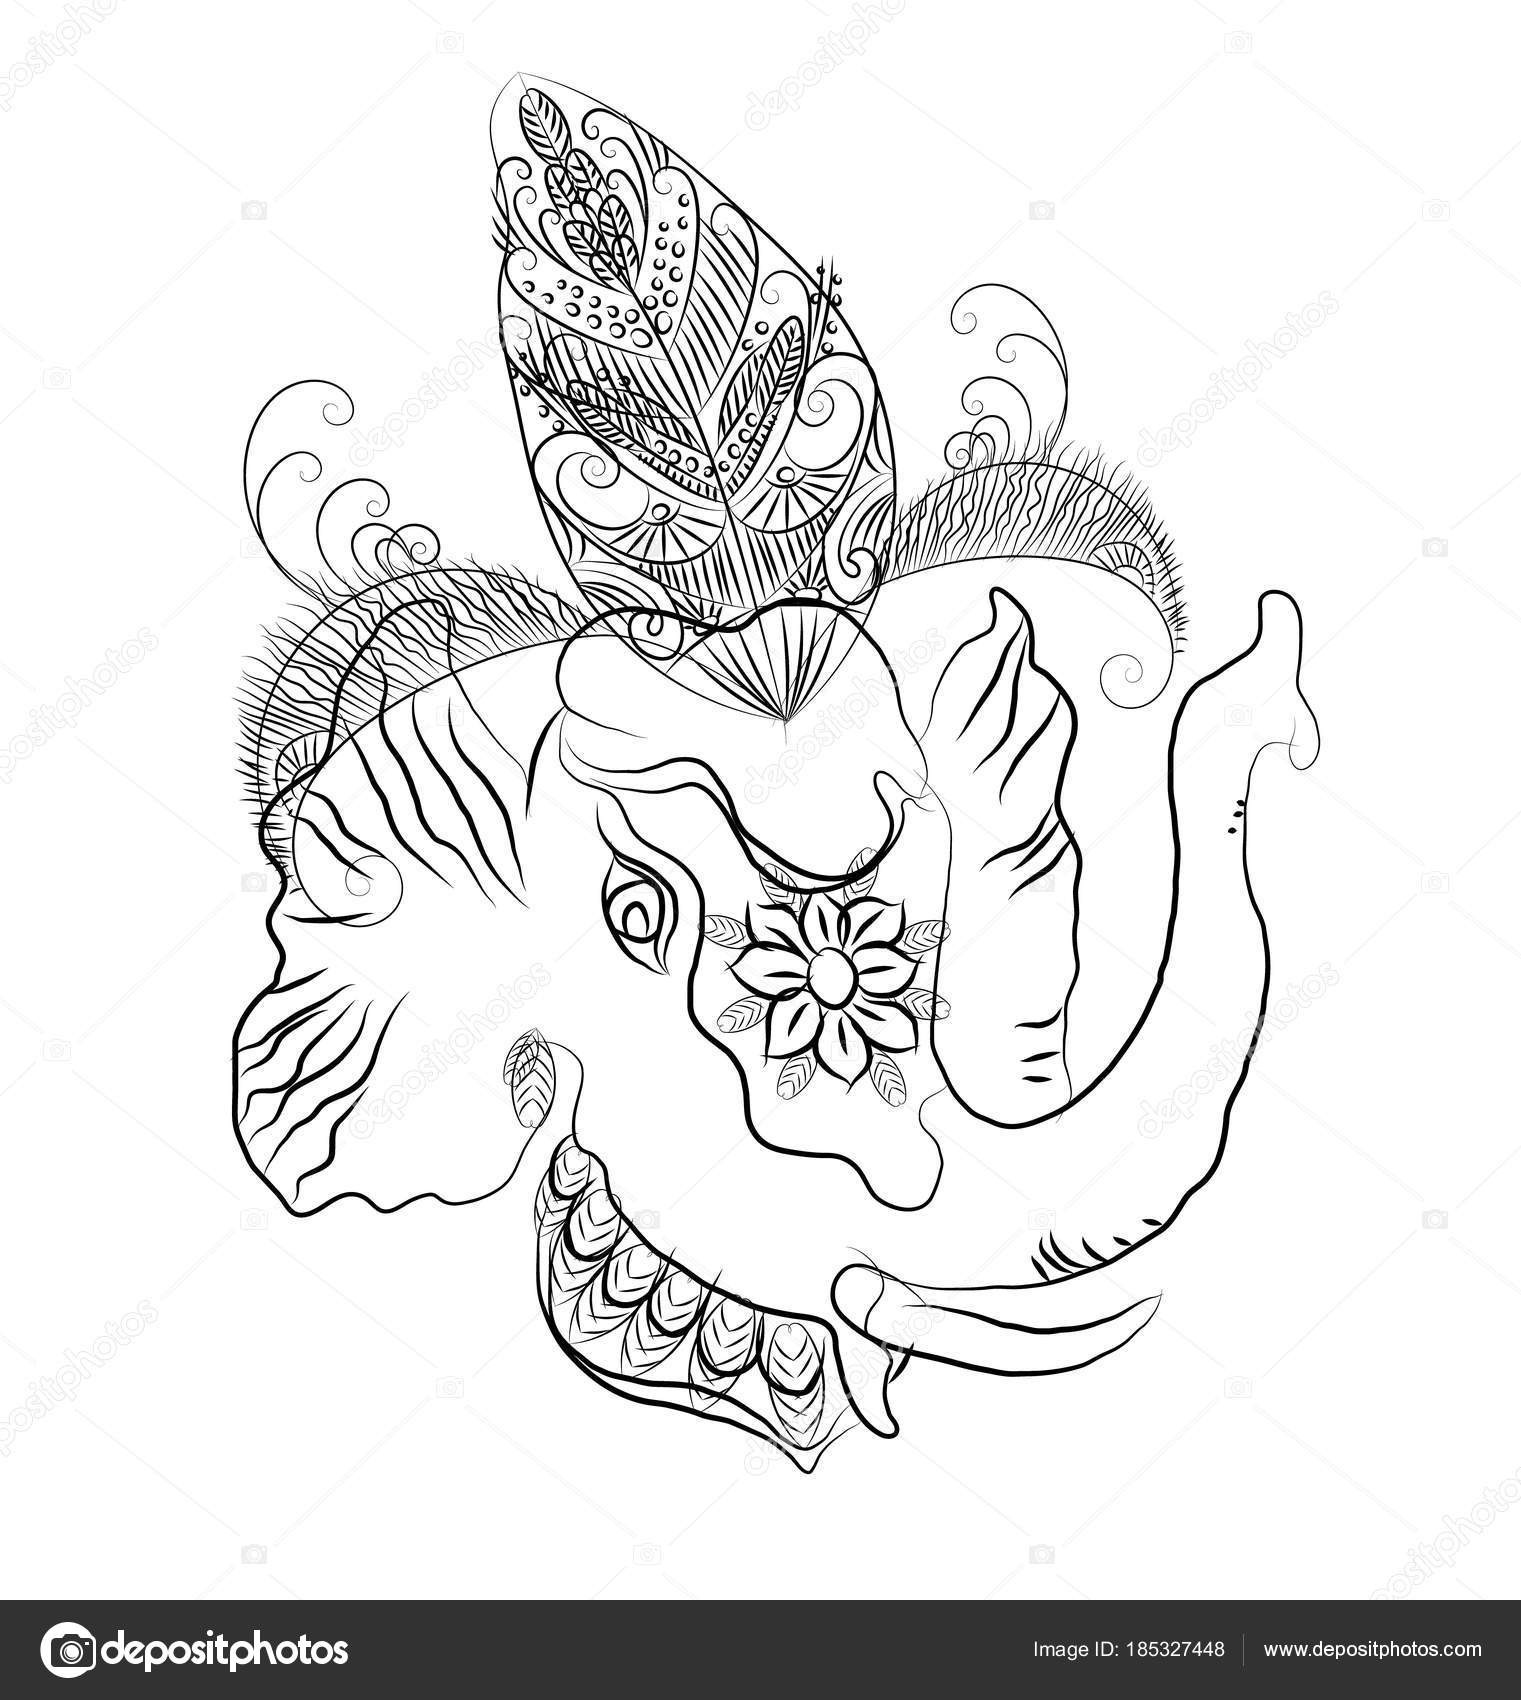 Indian Elephant Coloring Line Drawing Vector Illustartion Eps10 ...